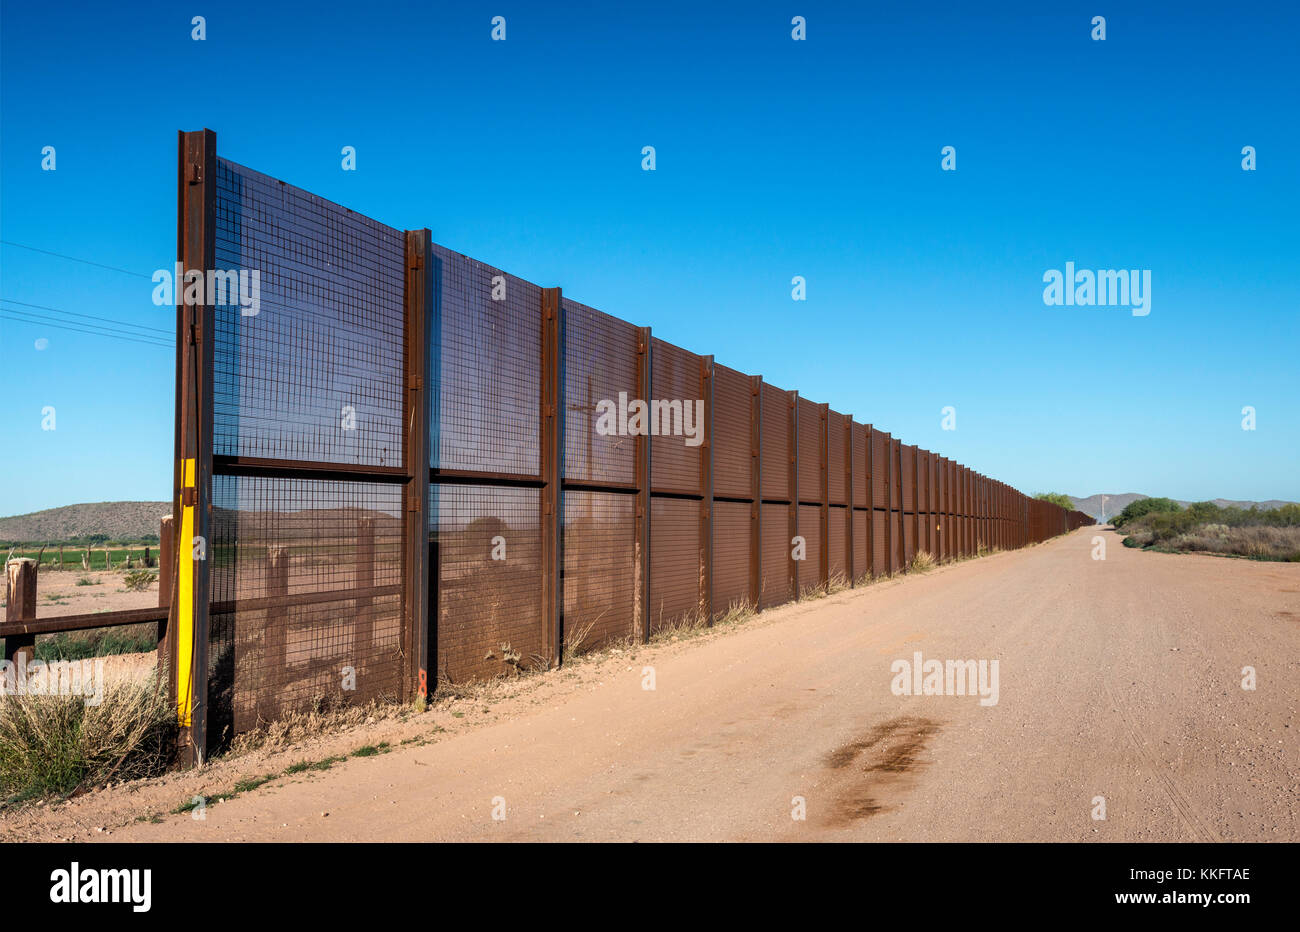 Fence at Mexican border, Sonoran Desert, Organ Pipe Cactus National Monument, Arizona, USA Stock Photo